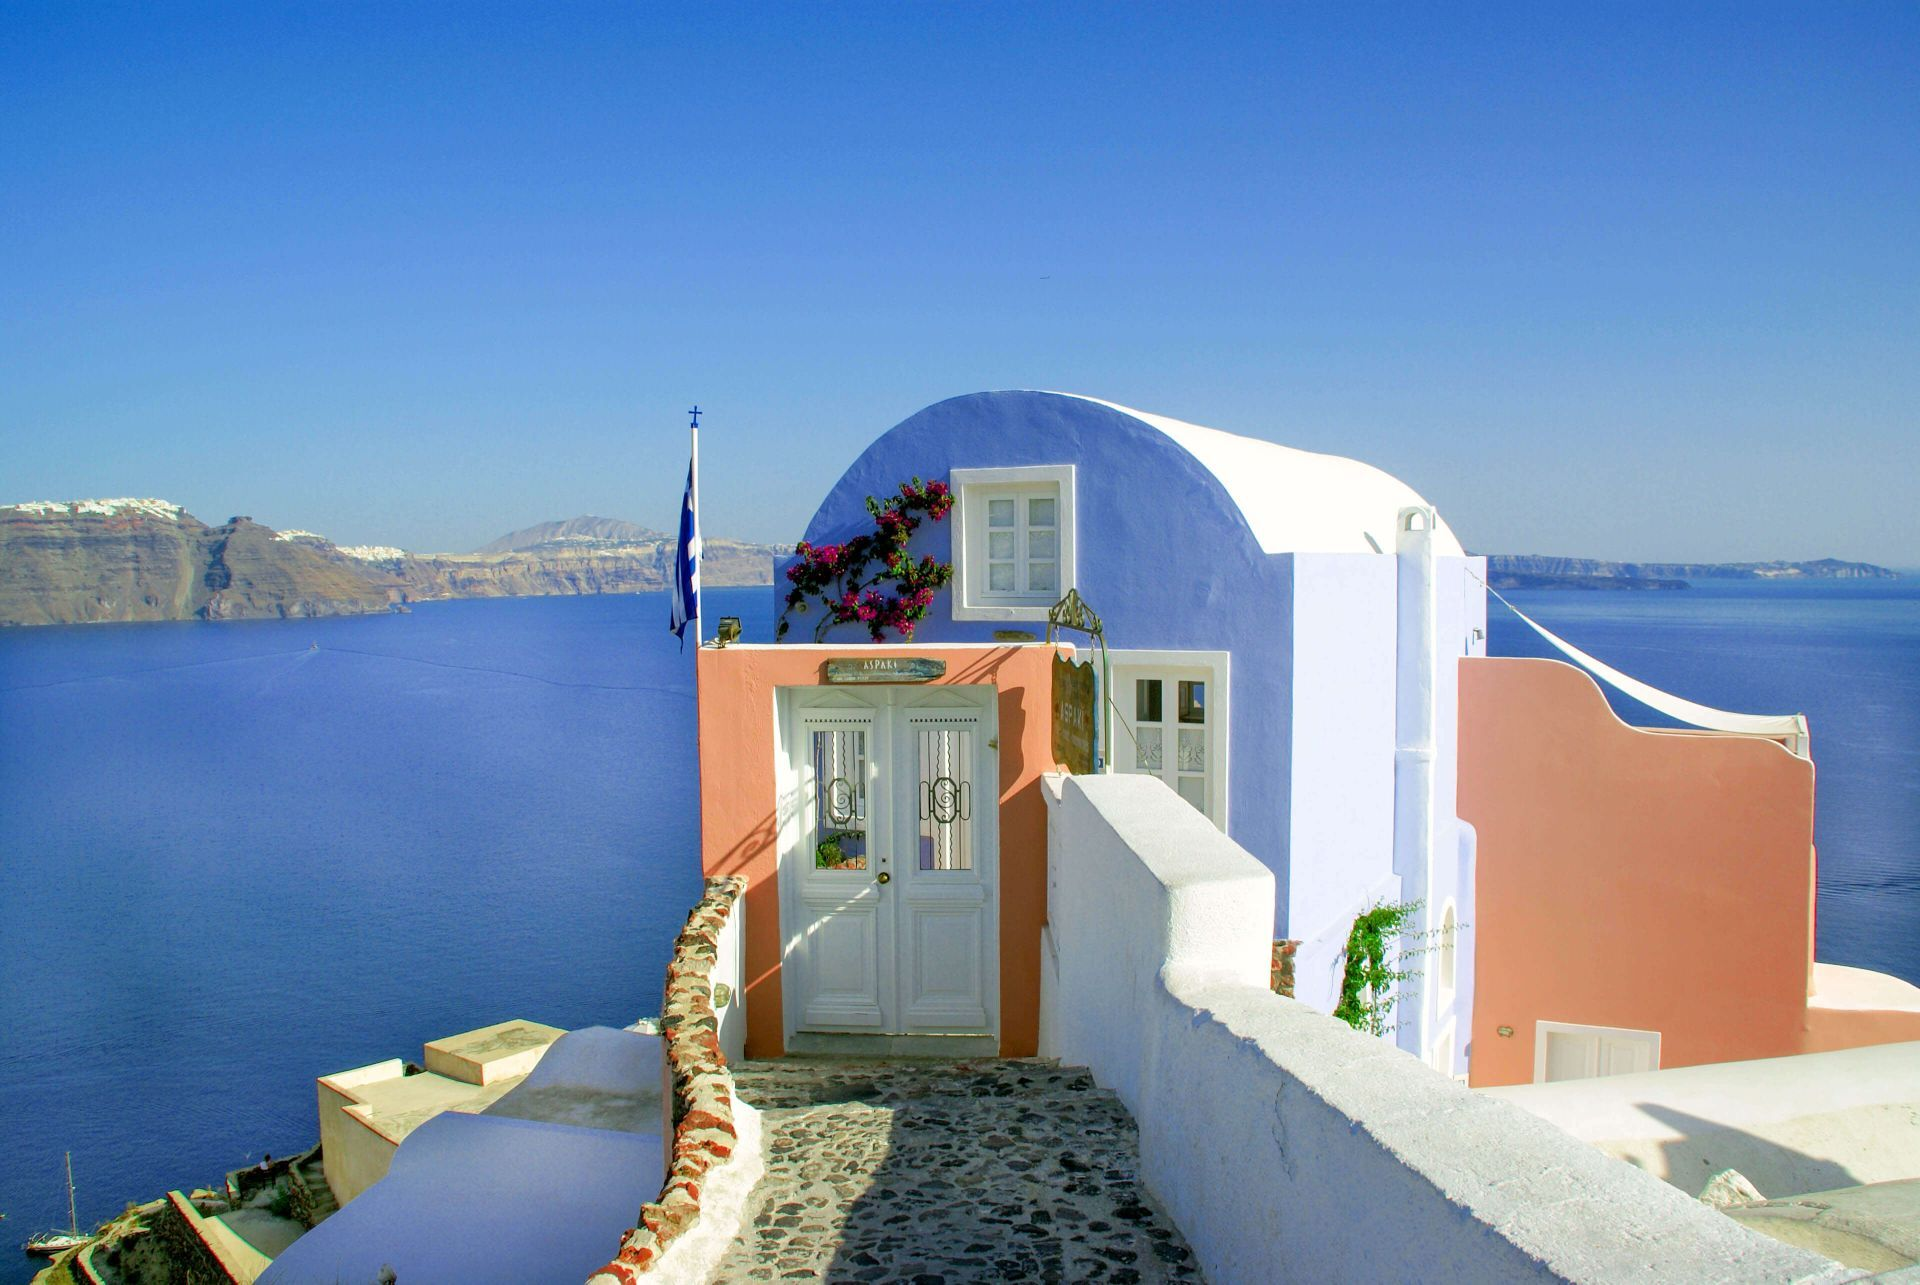 Santorini: Oia, the most famous village of Santorini